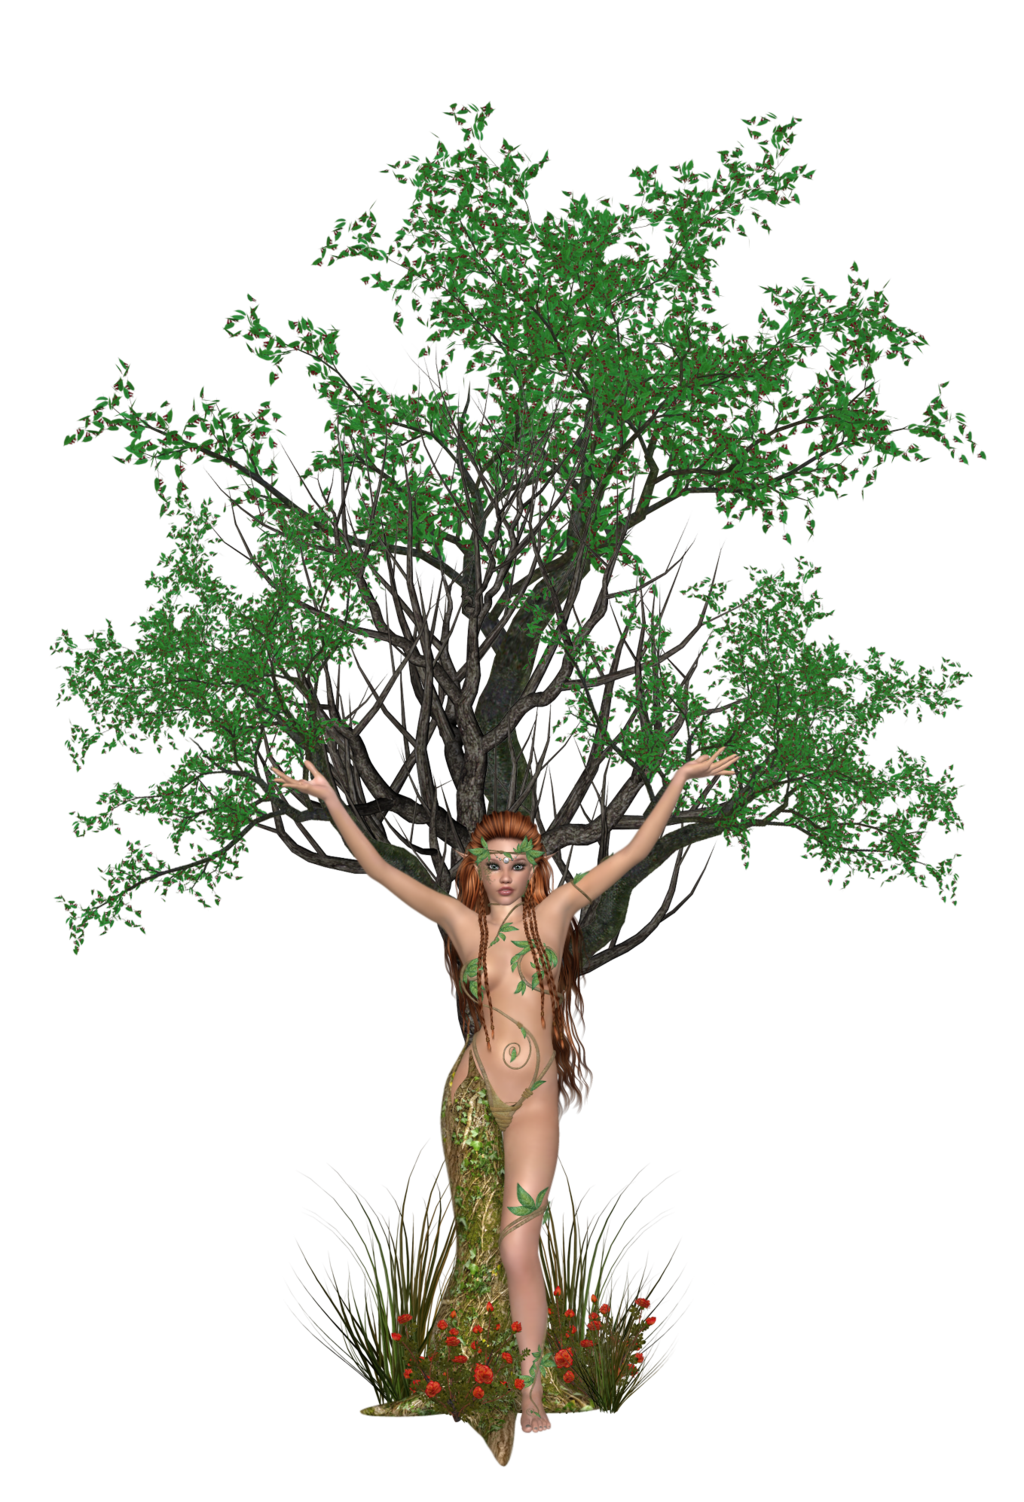 Dryad clipart #3, Download drawings